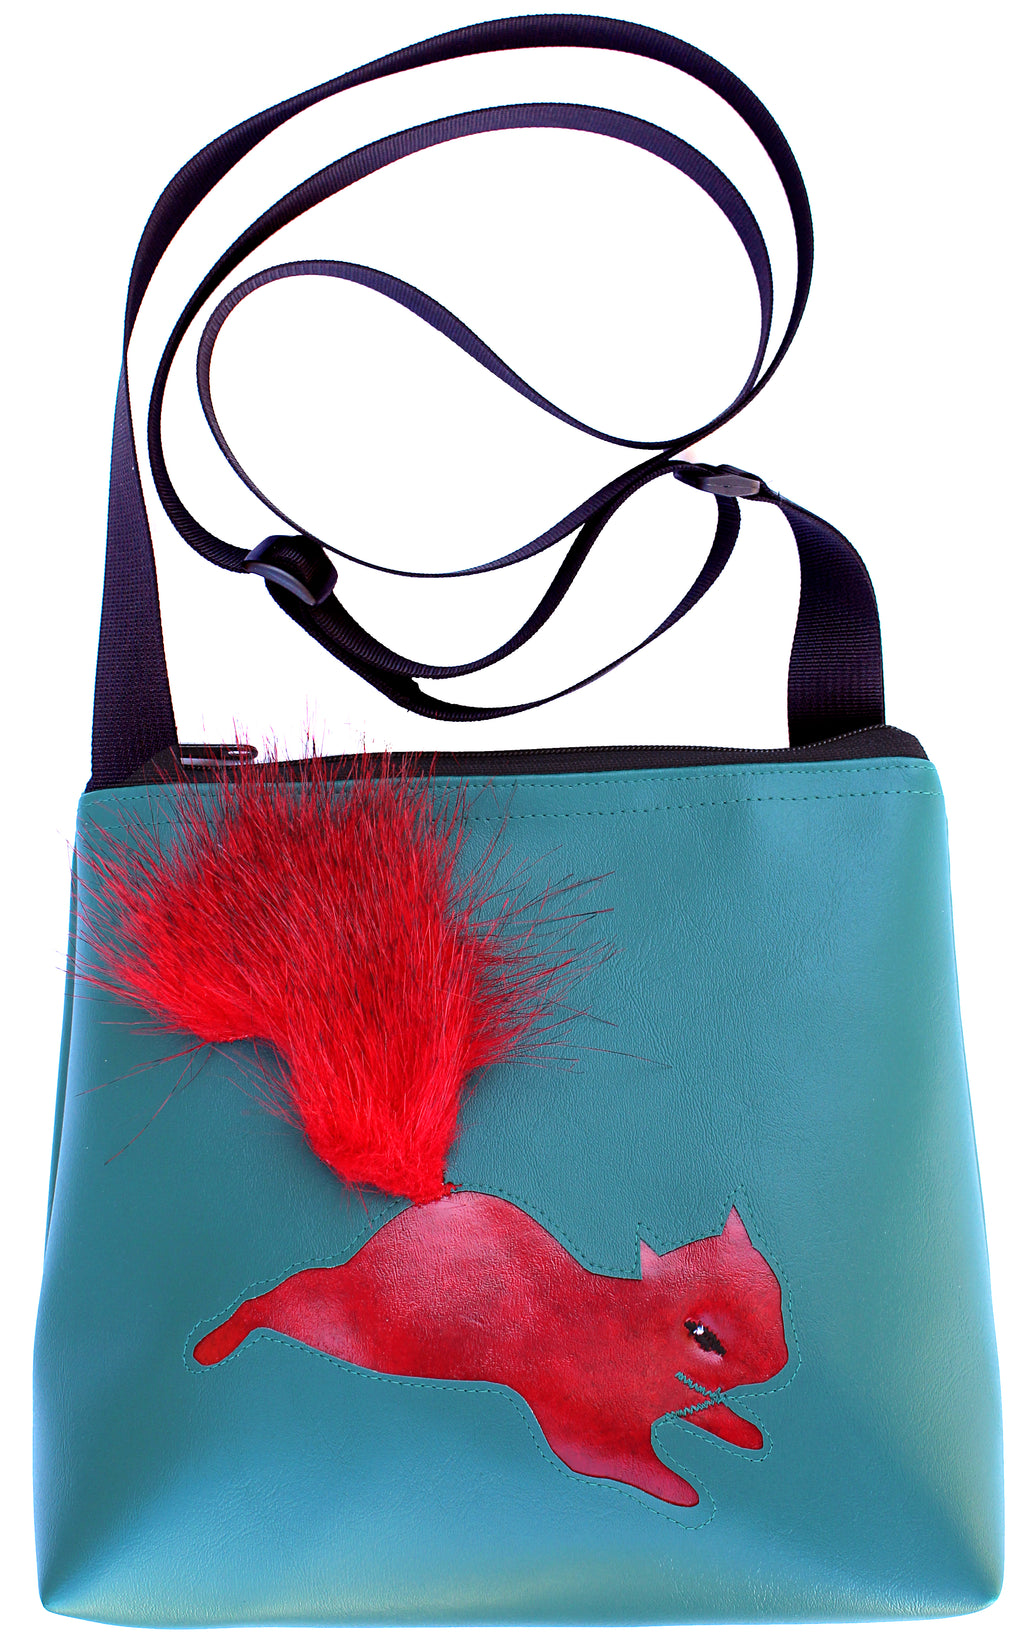 Red Squirrel on Turquoise mid-size crossbody